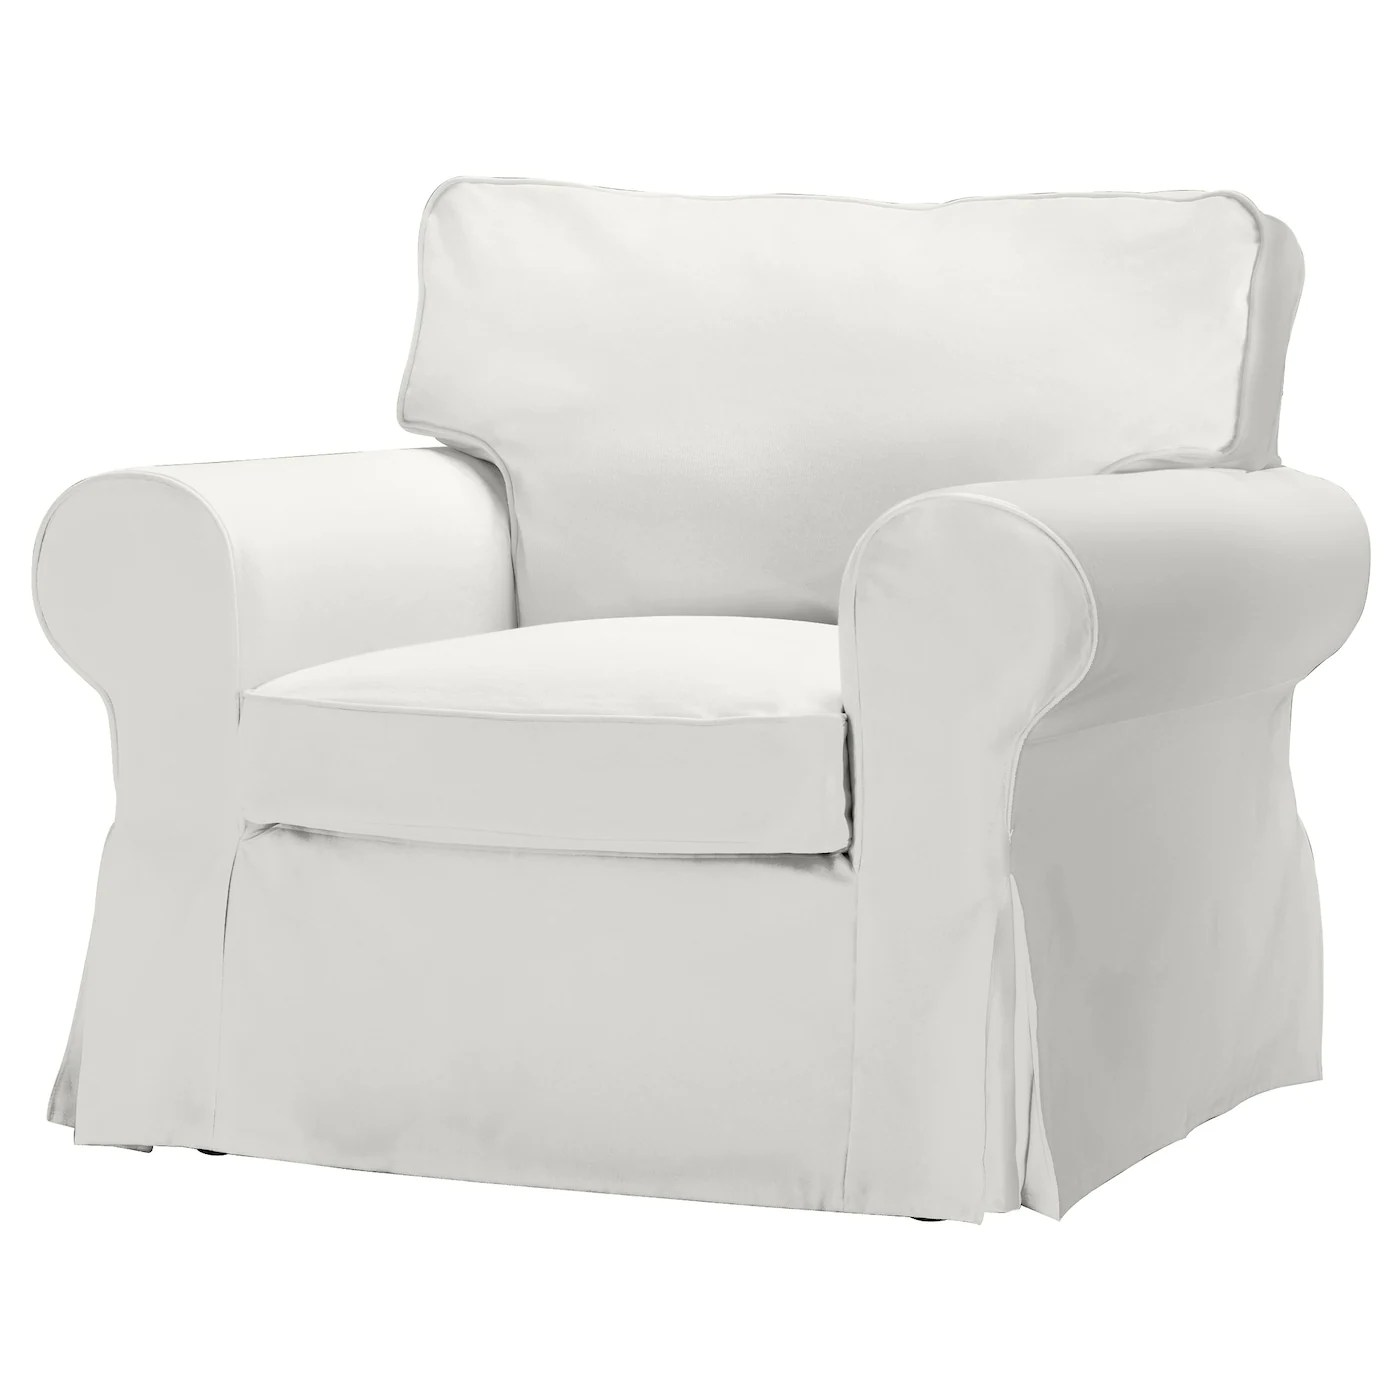 white lounge chair covers prouve standard ektorp armchair blekinge ikea